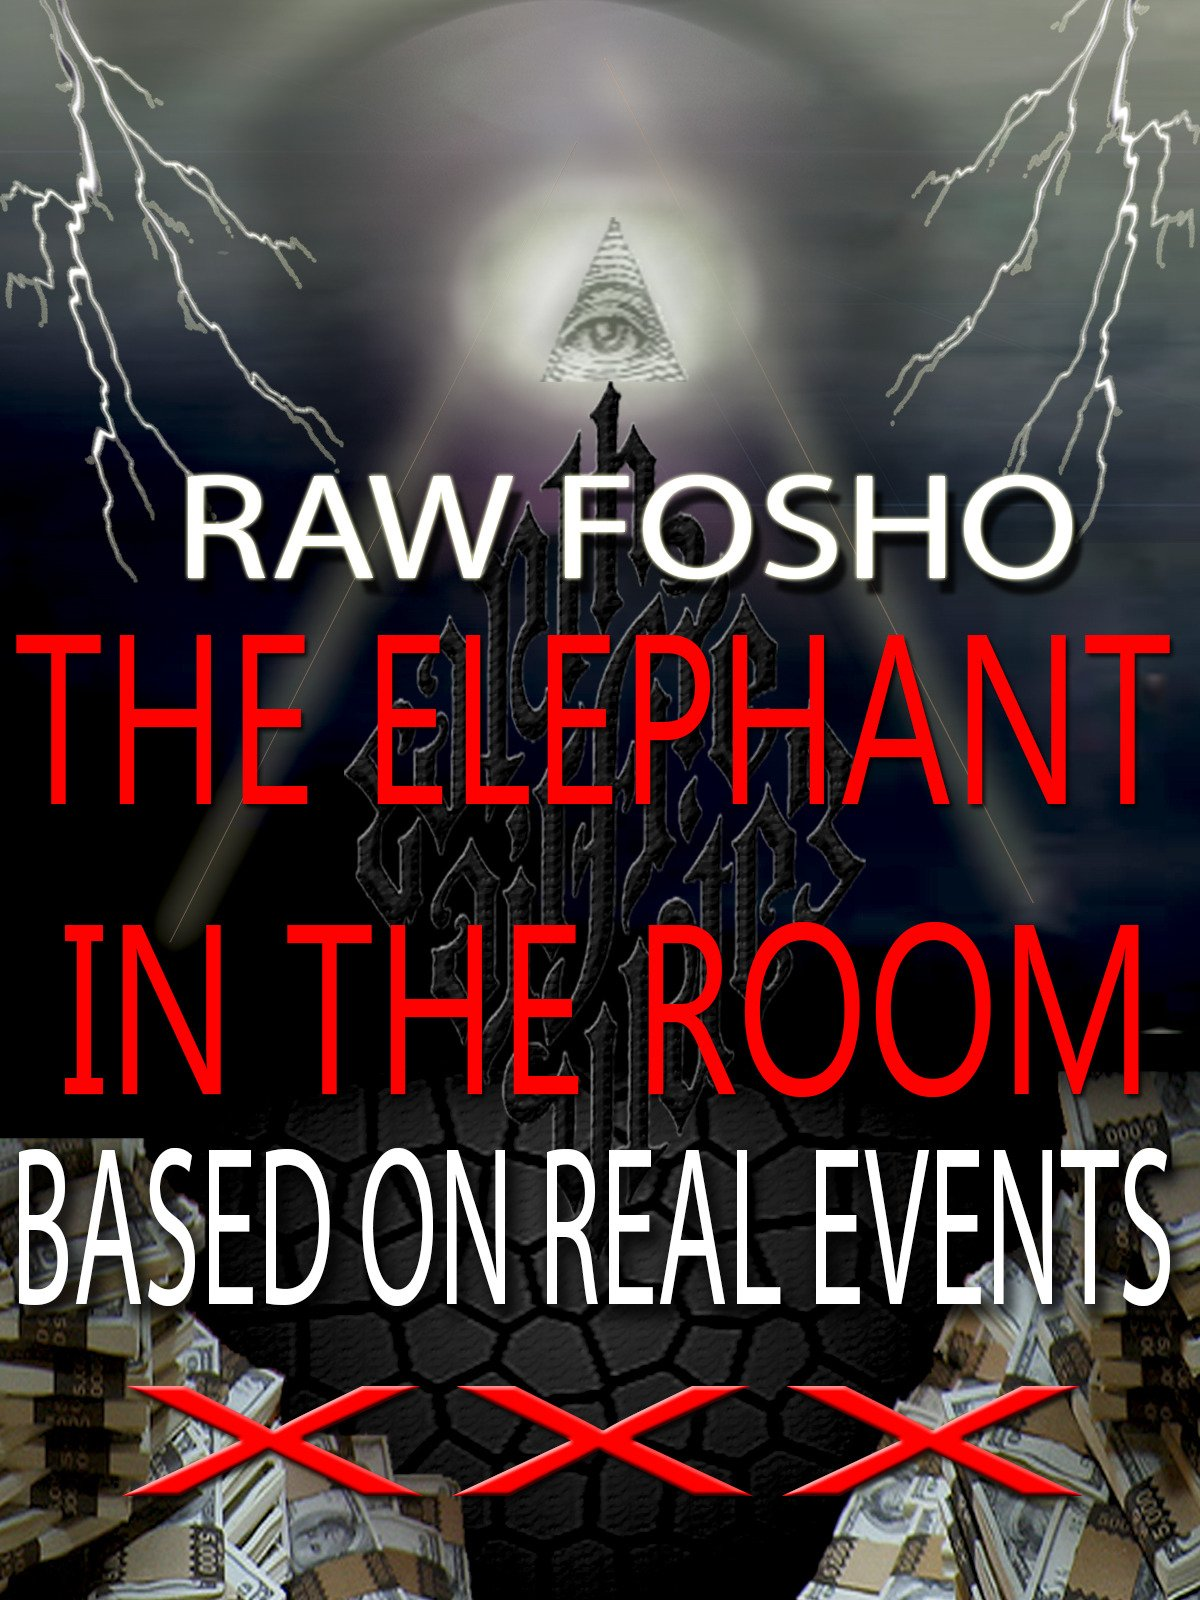 Raw Fosho The Elephant In The Room Based On Real Events